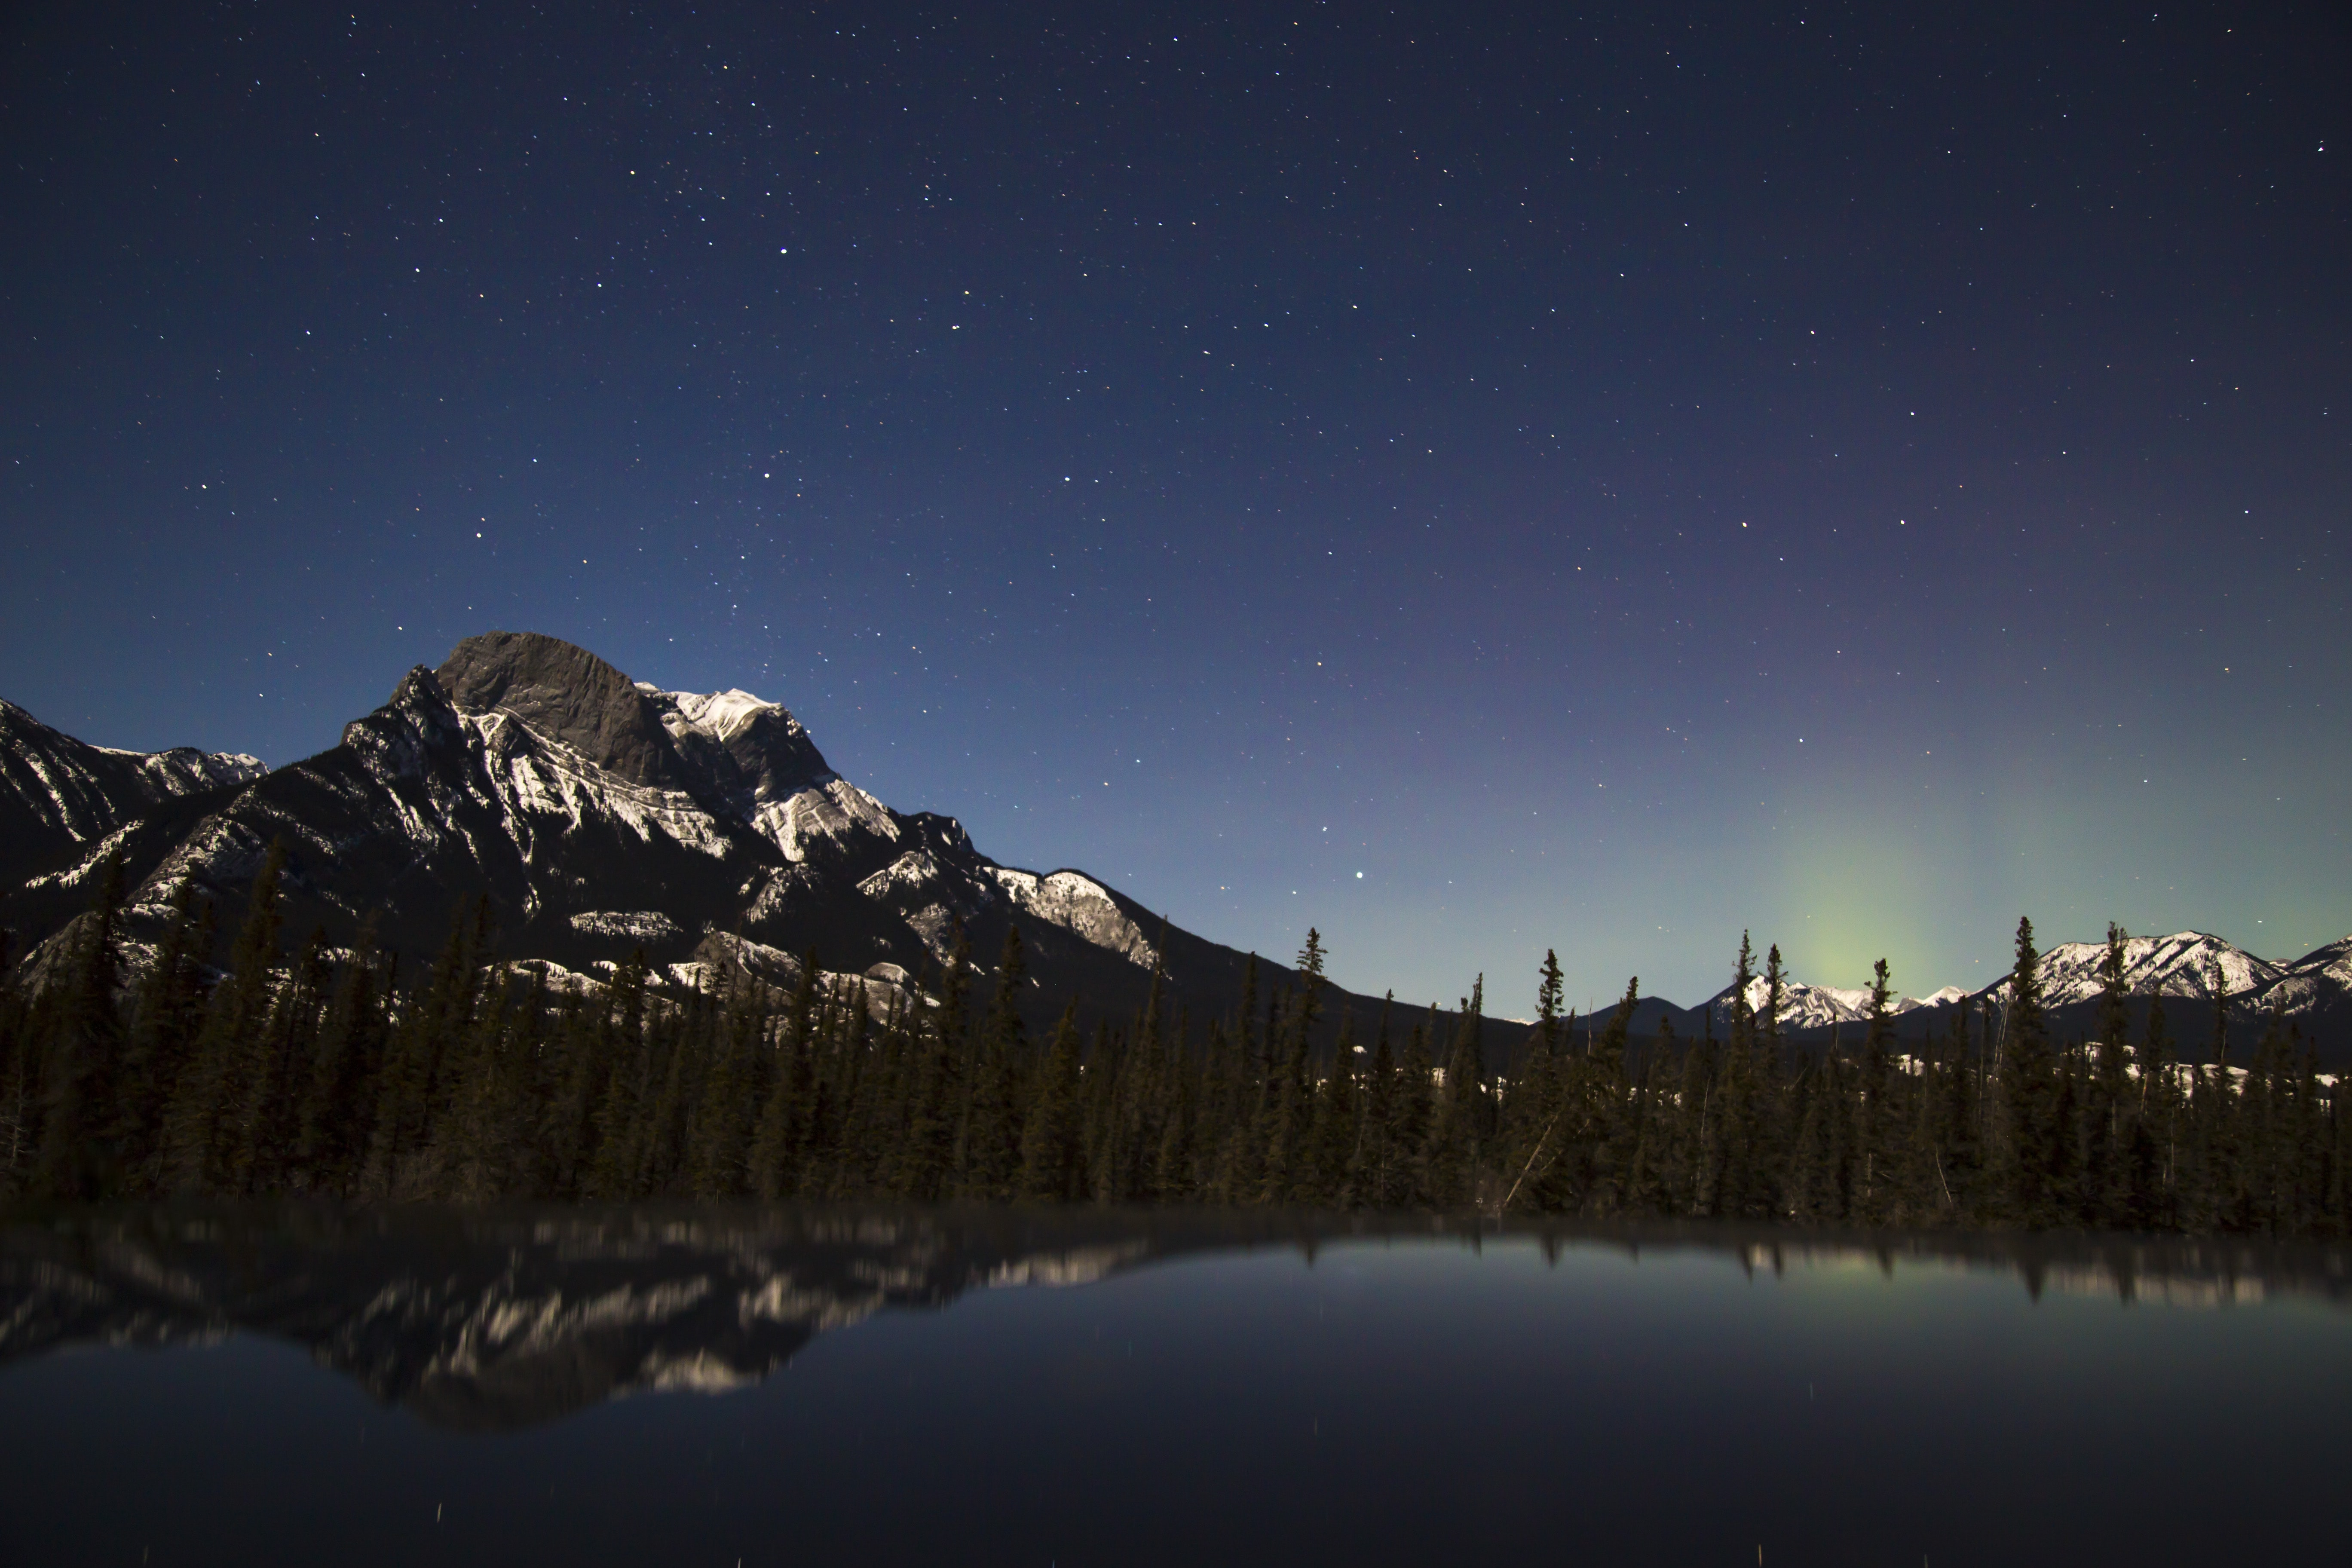 A scenic landscape with a lake and a mountain under a starry sky in Jasper